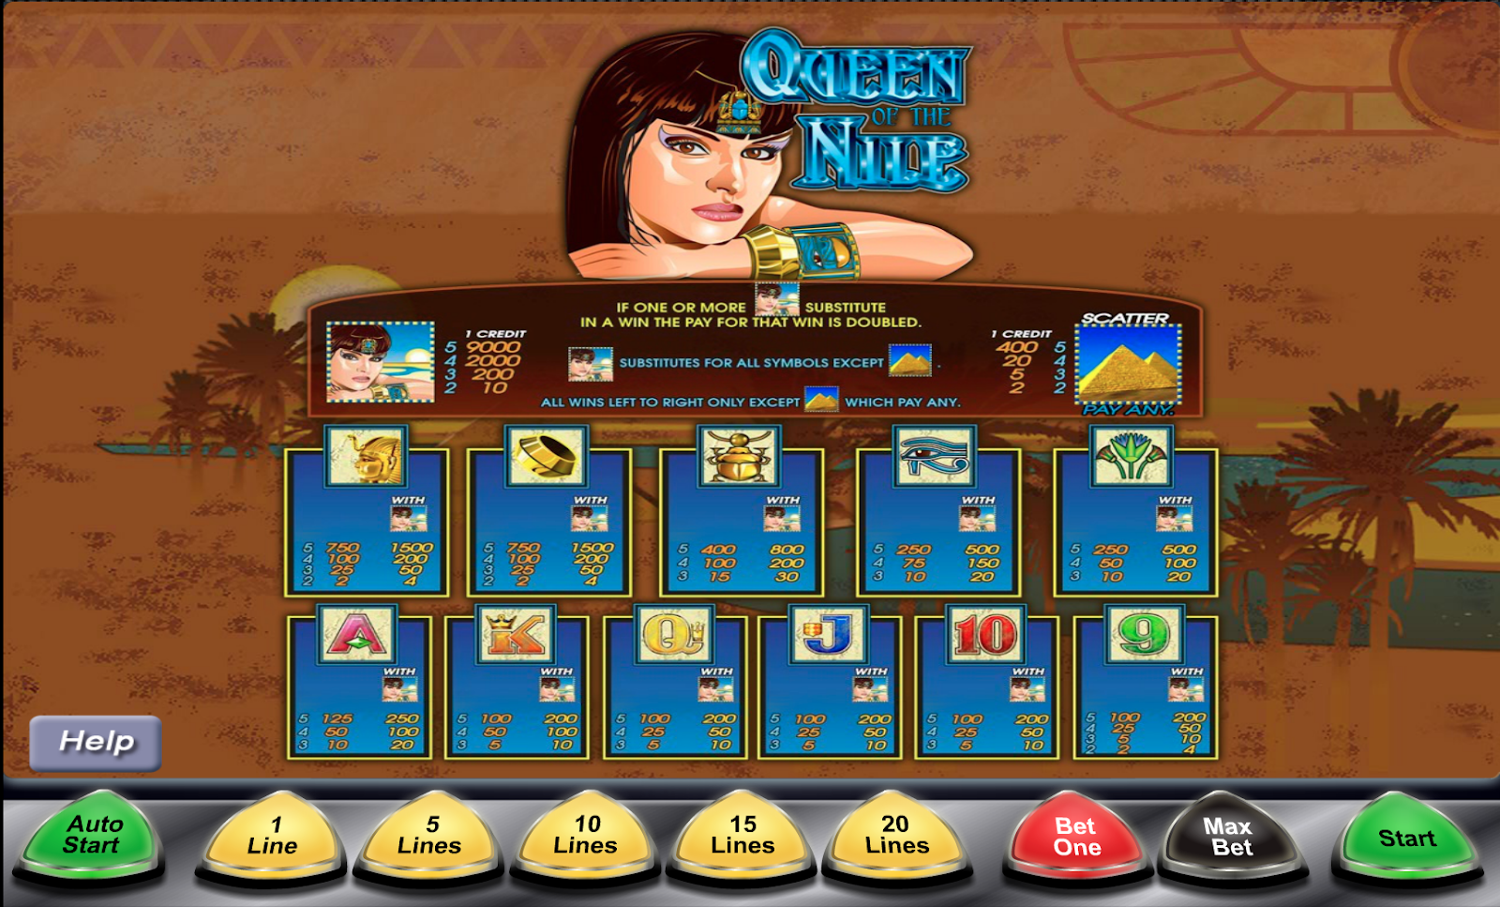 Queen of the Nile paytable